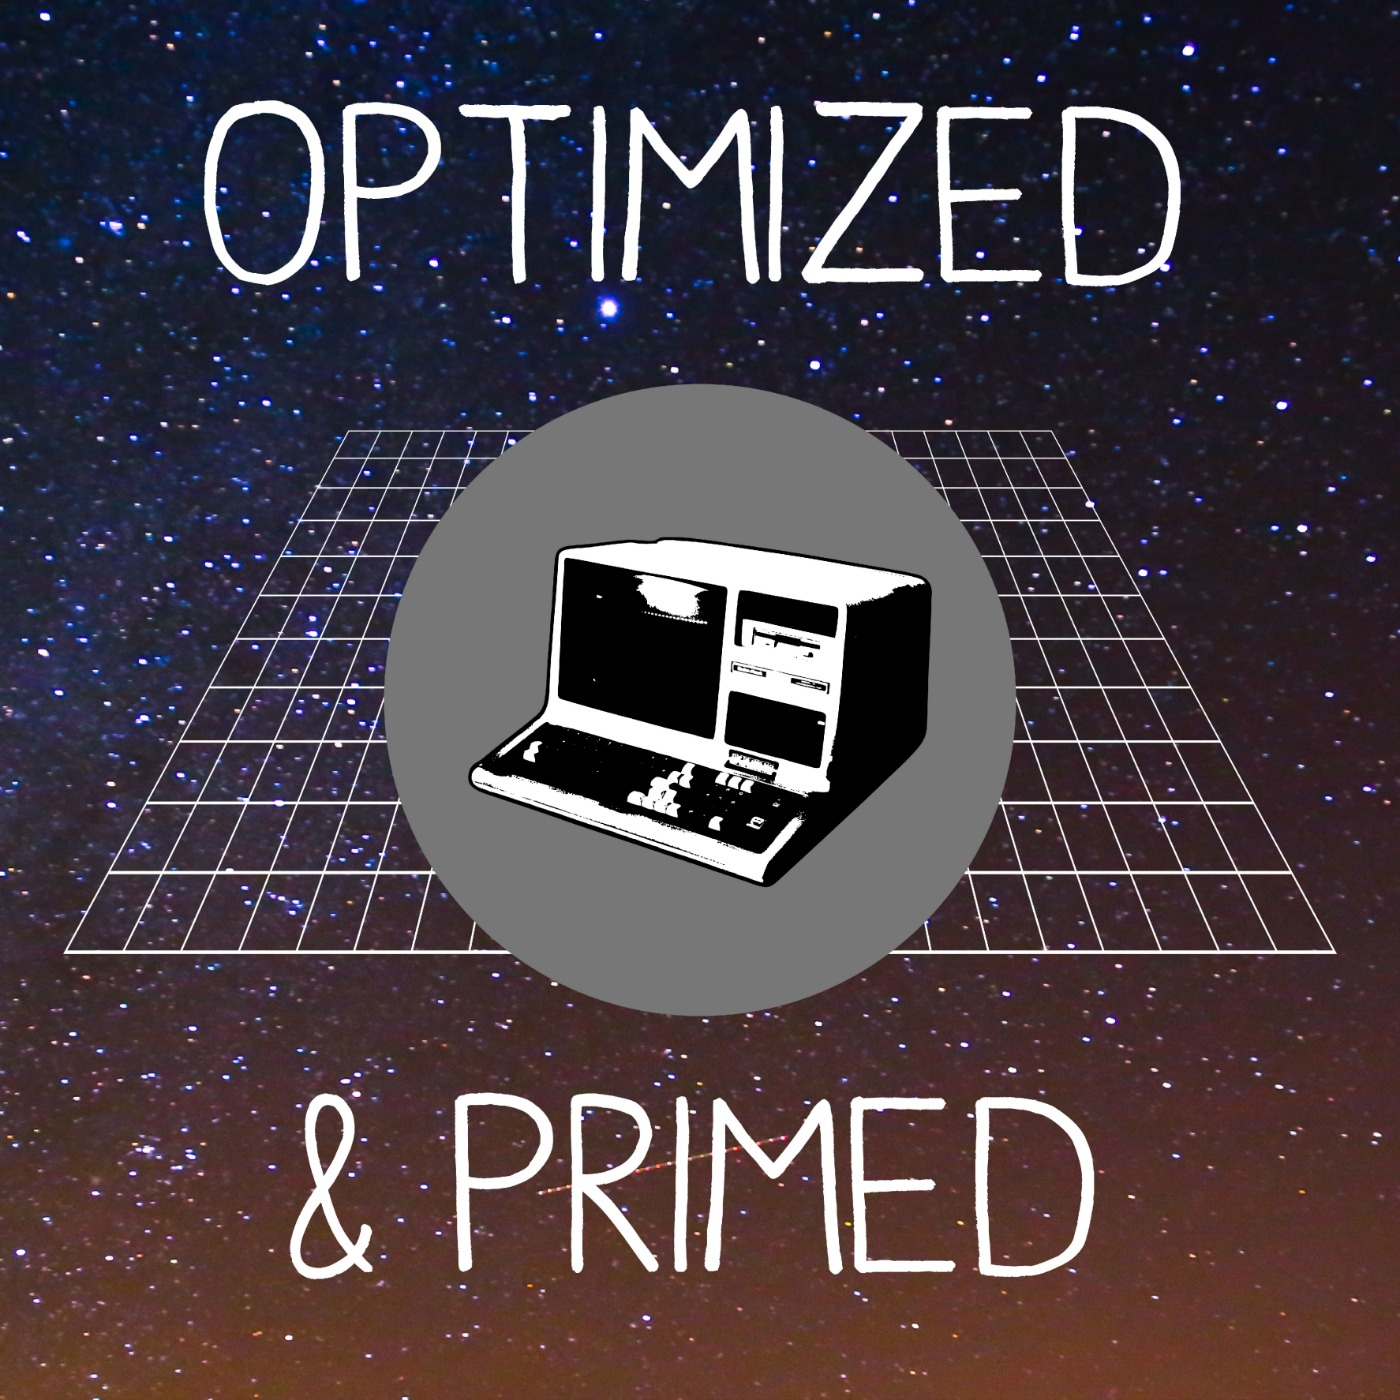 Optimized & Primed